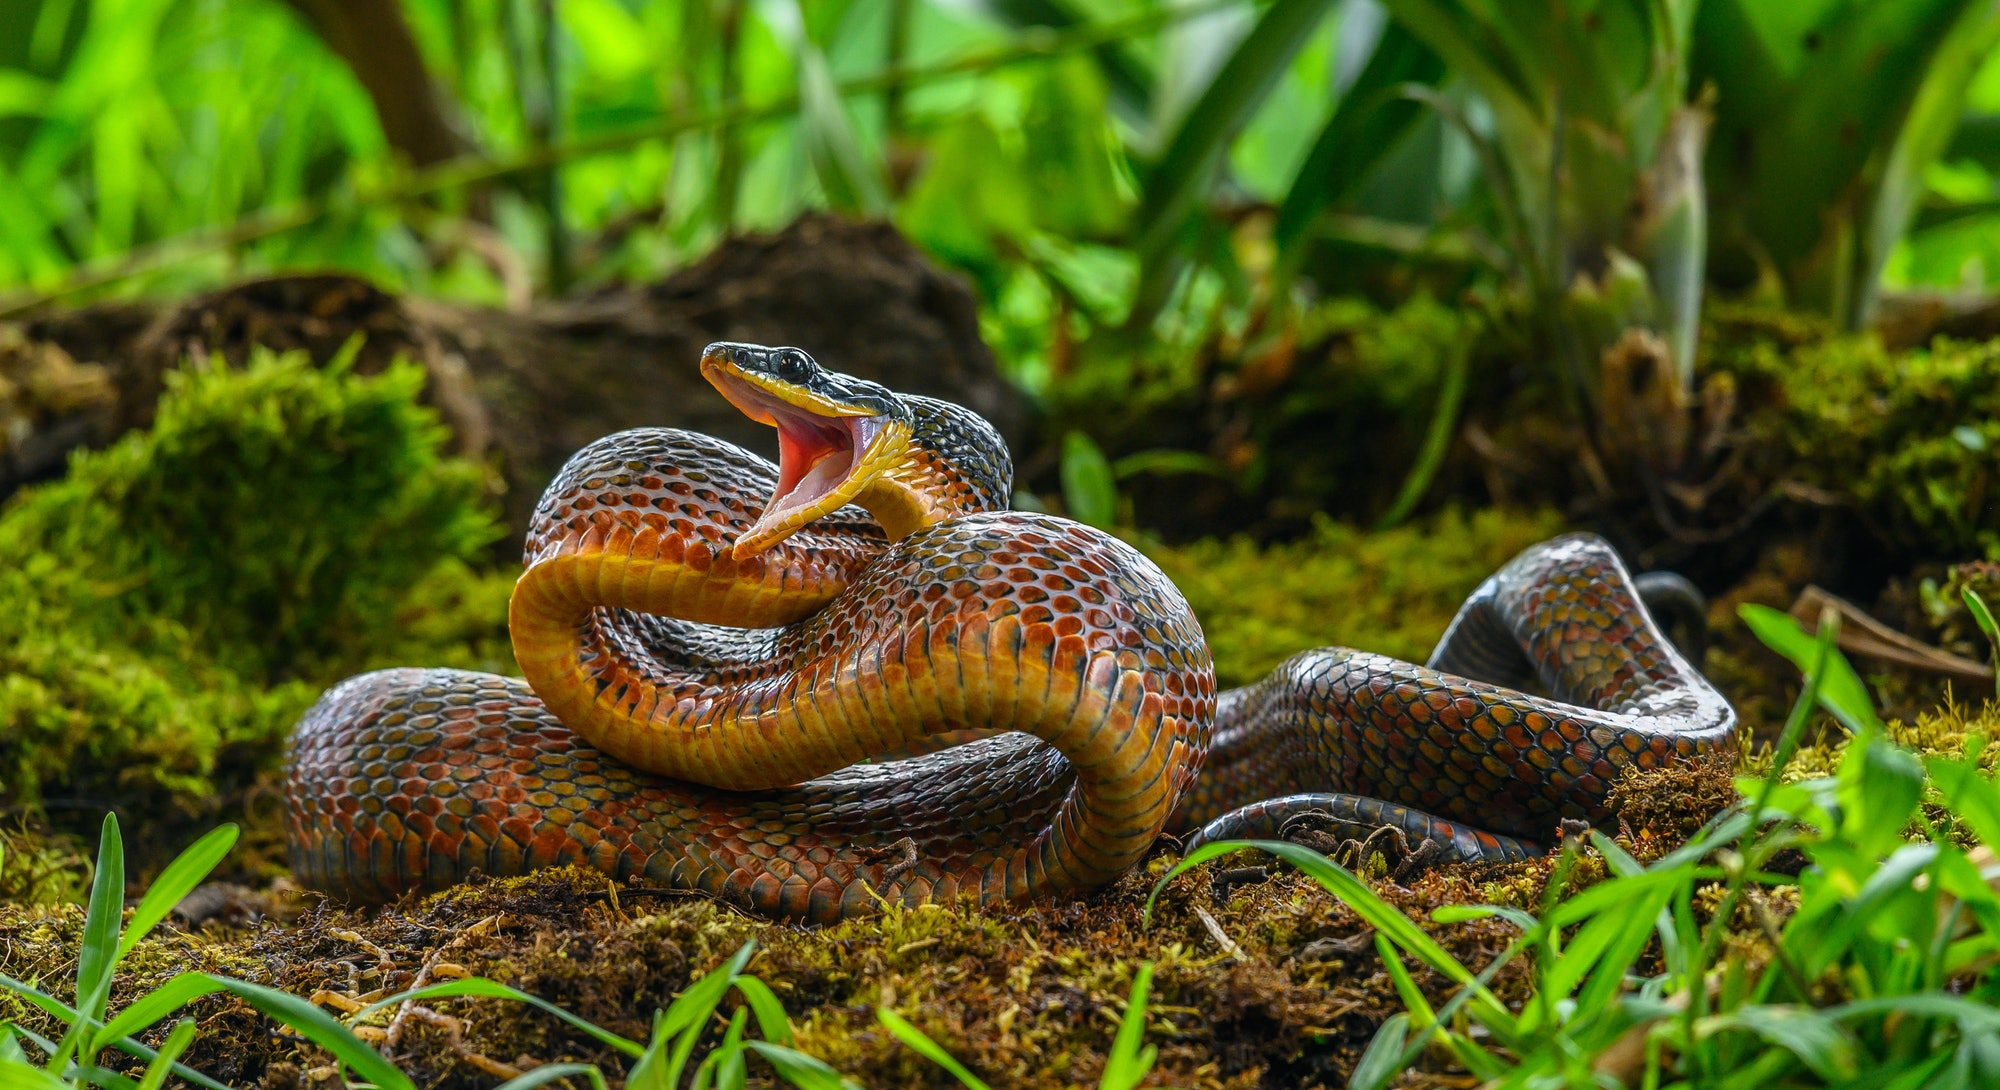 Puffing Snake - Phrynonax poecilonotus is a species of nonvenomous snake in the family Colubridae. The species is endemic to the New World